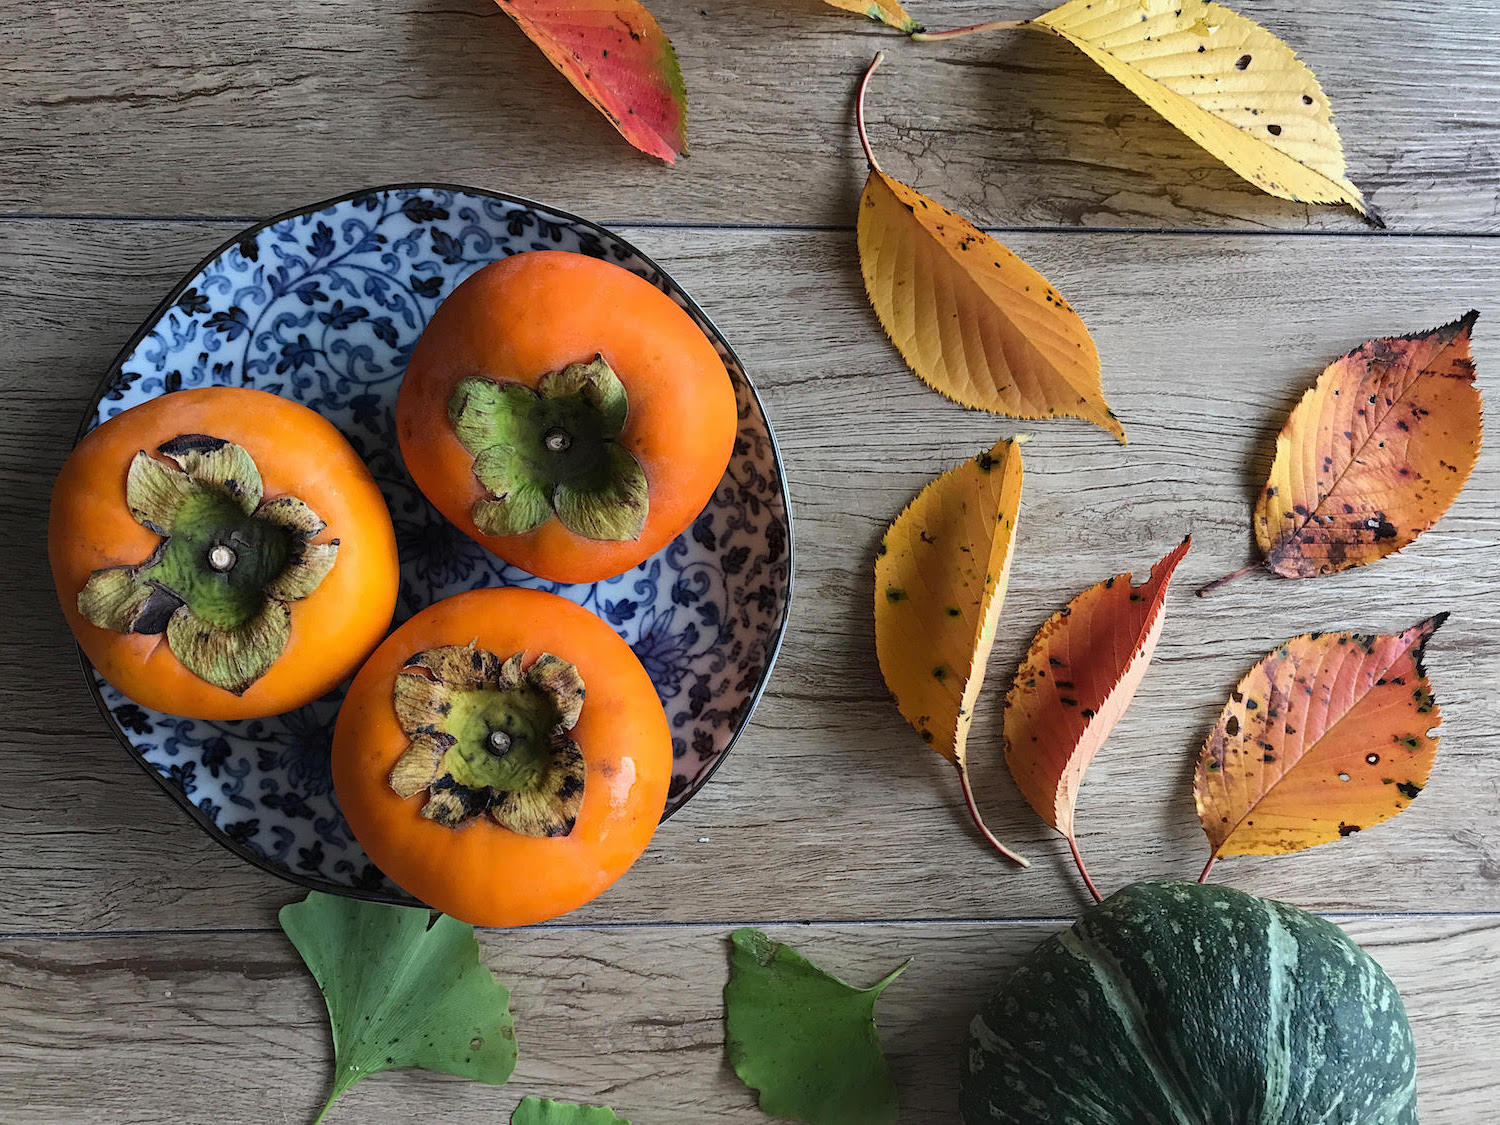 Japanese Persimmon Health Benefits & Nutritional Value